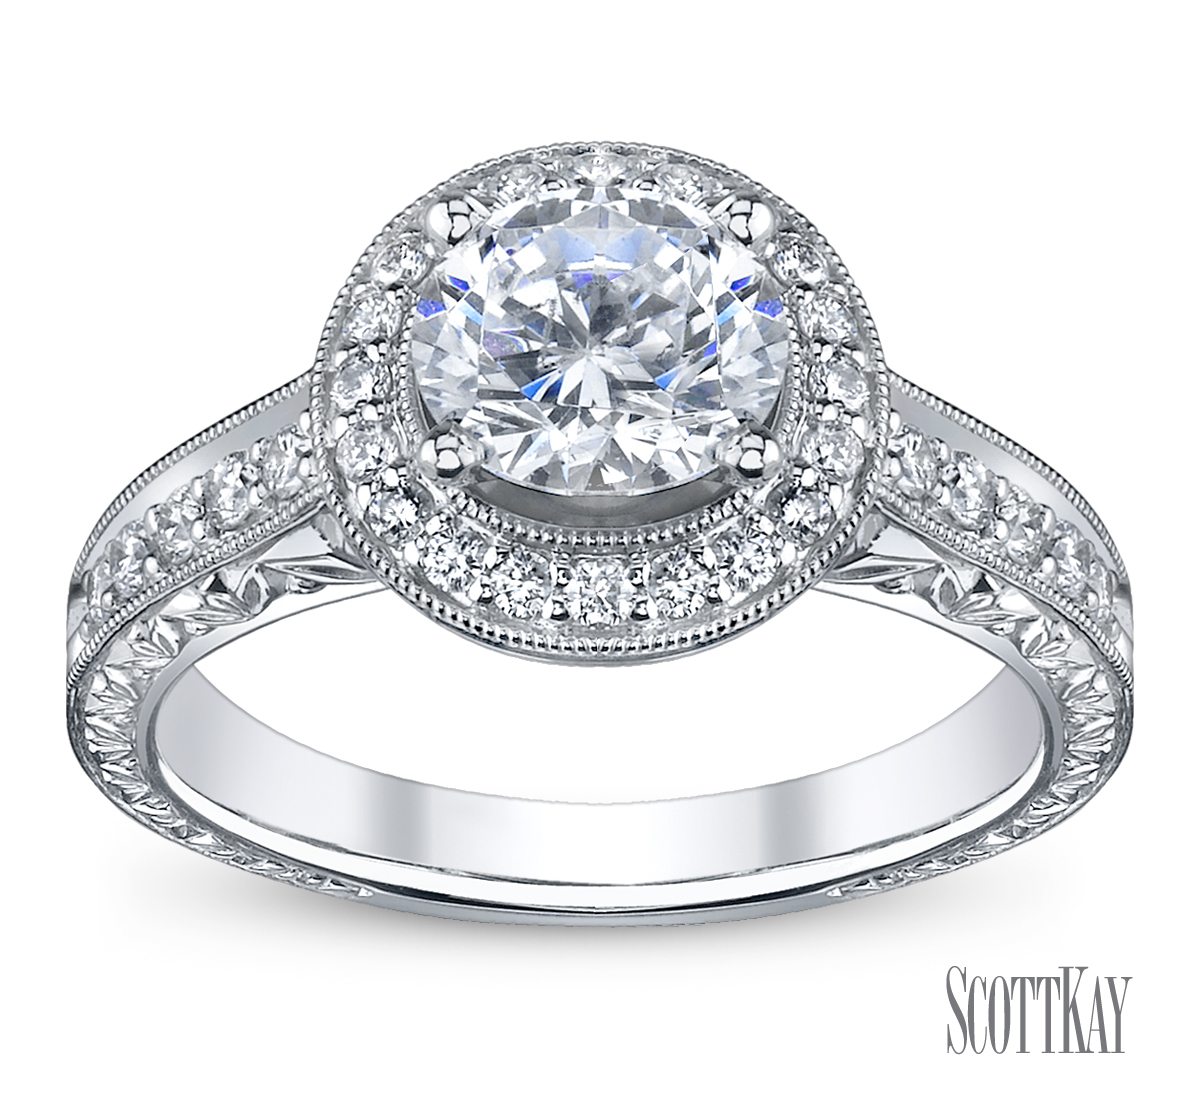 Family Co Jewelers Scott Kay B1602r310: The Halo Diamond Engagement Ring (Beyonce)